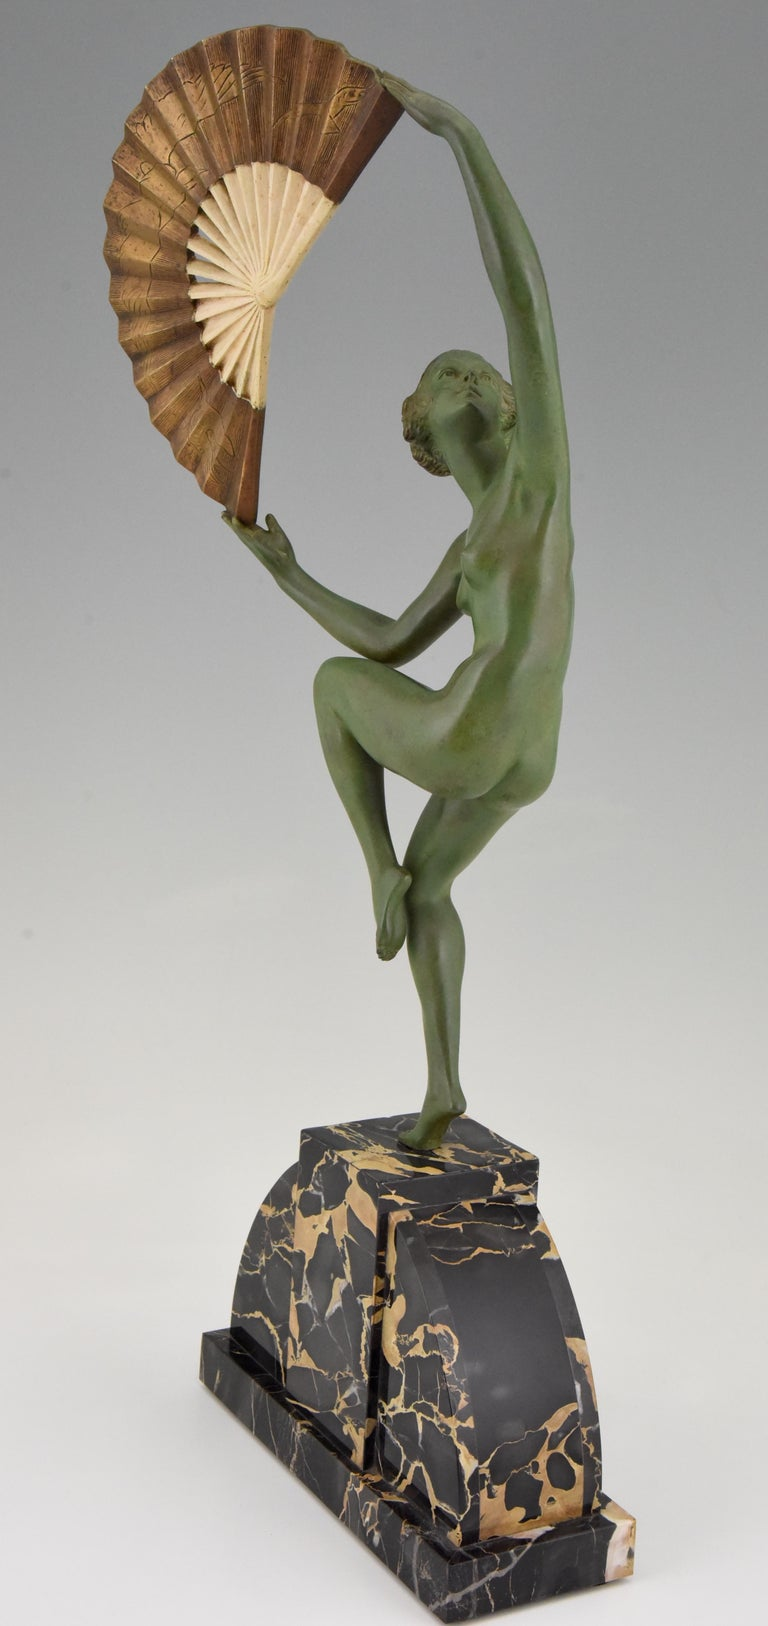 French Art Deco Bronze Sculpture Nude Fan Dancer Marcel Andre Bouraine, France, 1925 For Sale